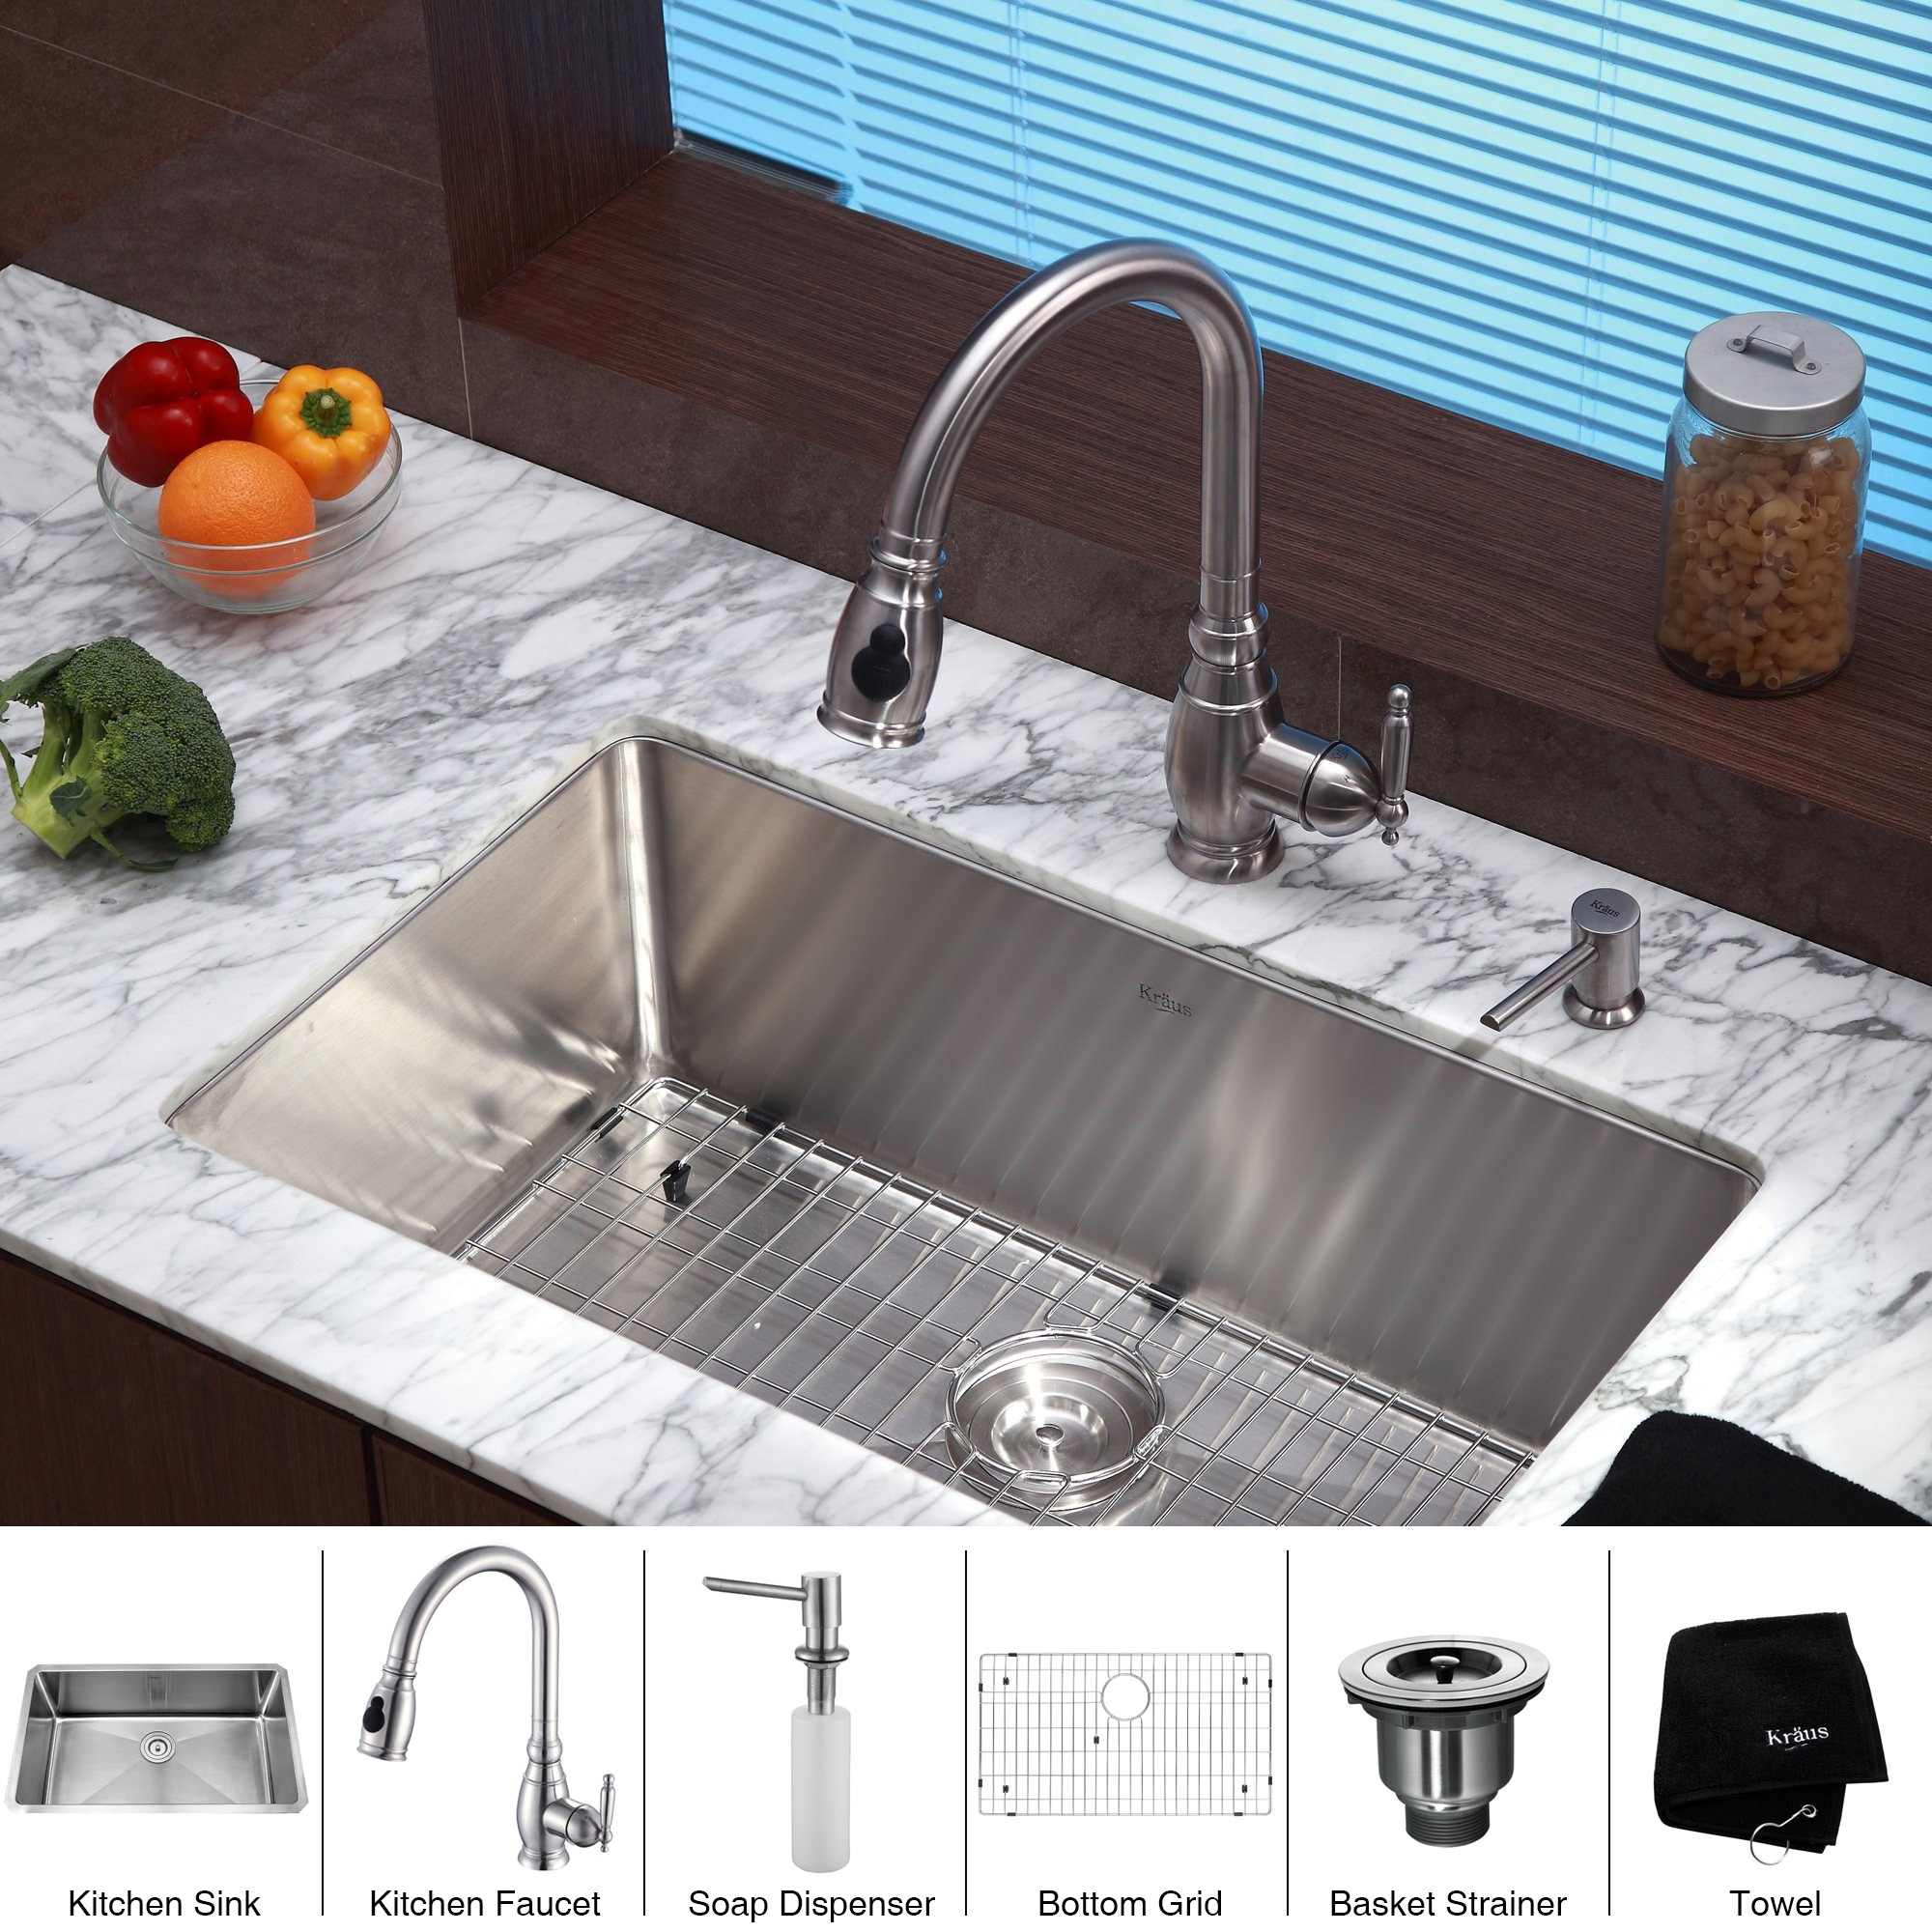 kohler kitchen faucets with soap dispenser kohler kitchen faucets with soap dispenser kitchen interesting kitchen sink faucet for your kitchen decor 2000 x 2000